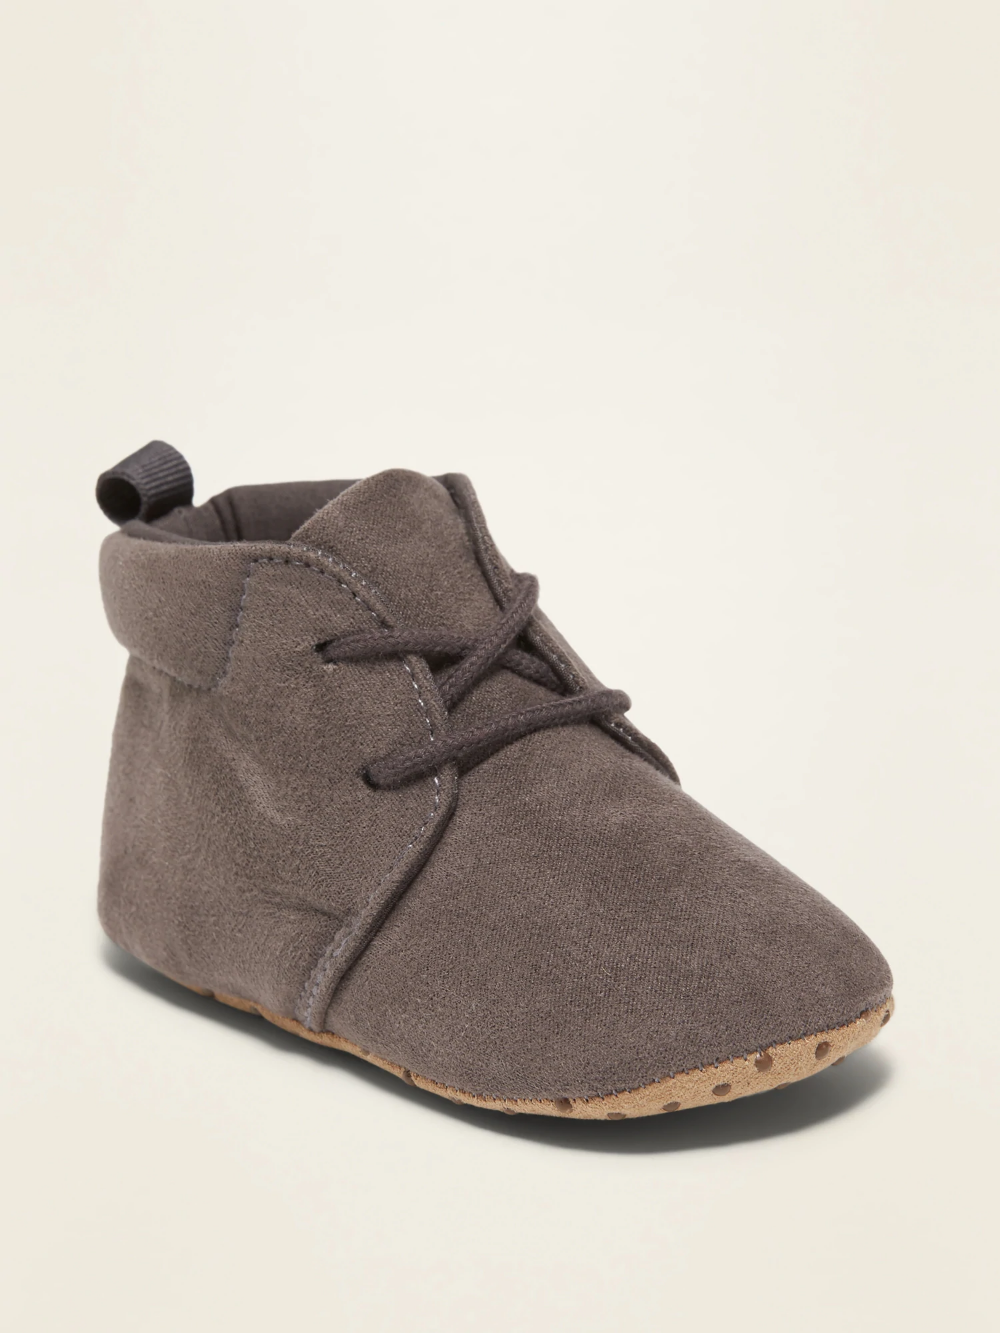 Faux Suede Desert Boots For Baby Old Navy Old Navy Baby Boy Boys Boots